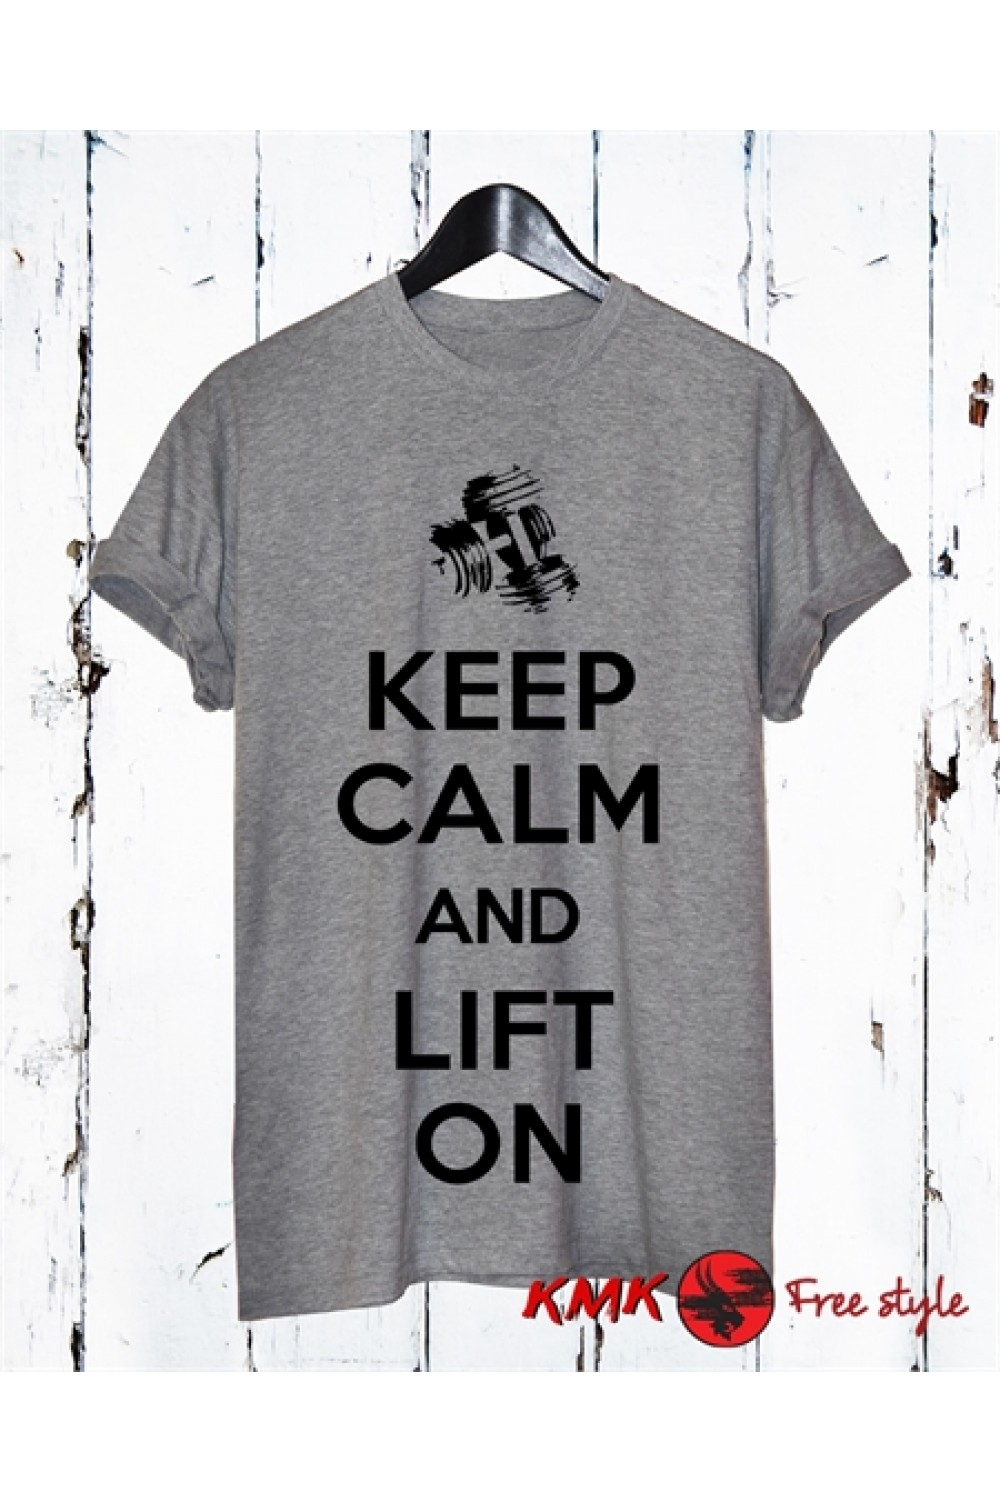 Keep Calm Printed T Shirt Lift On Tee